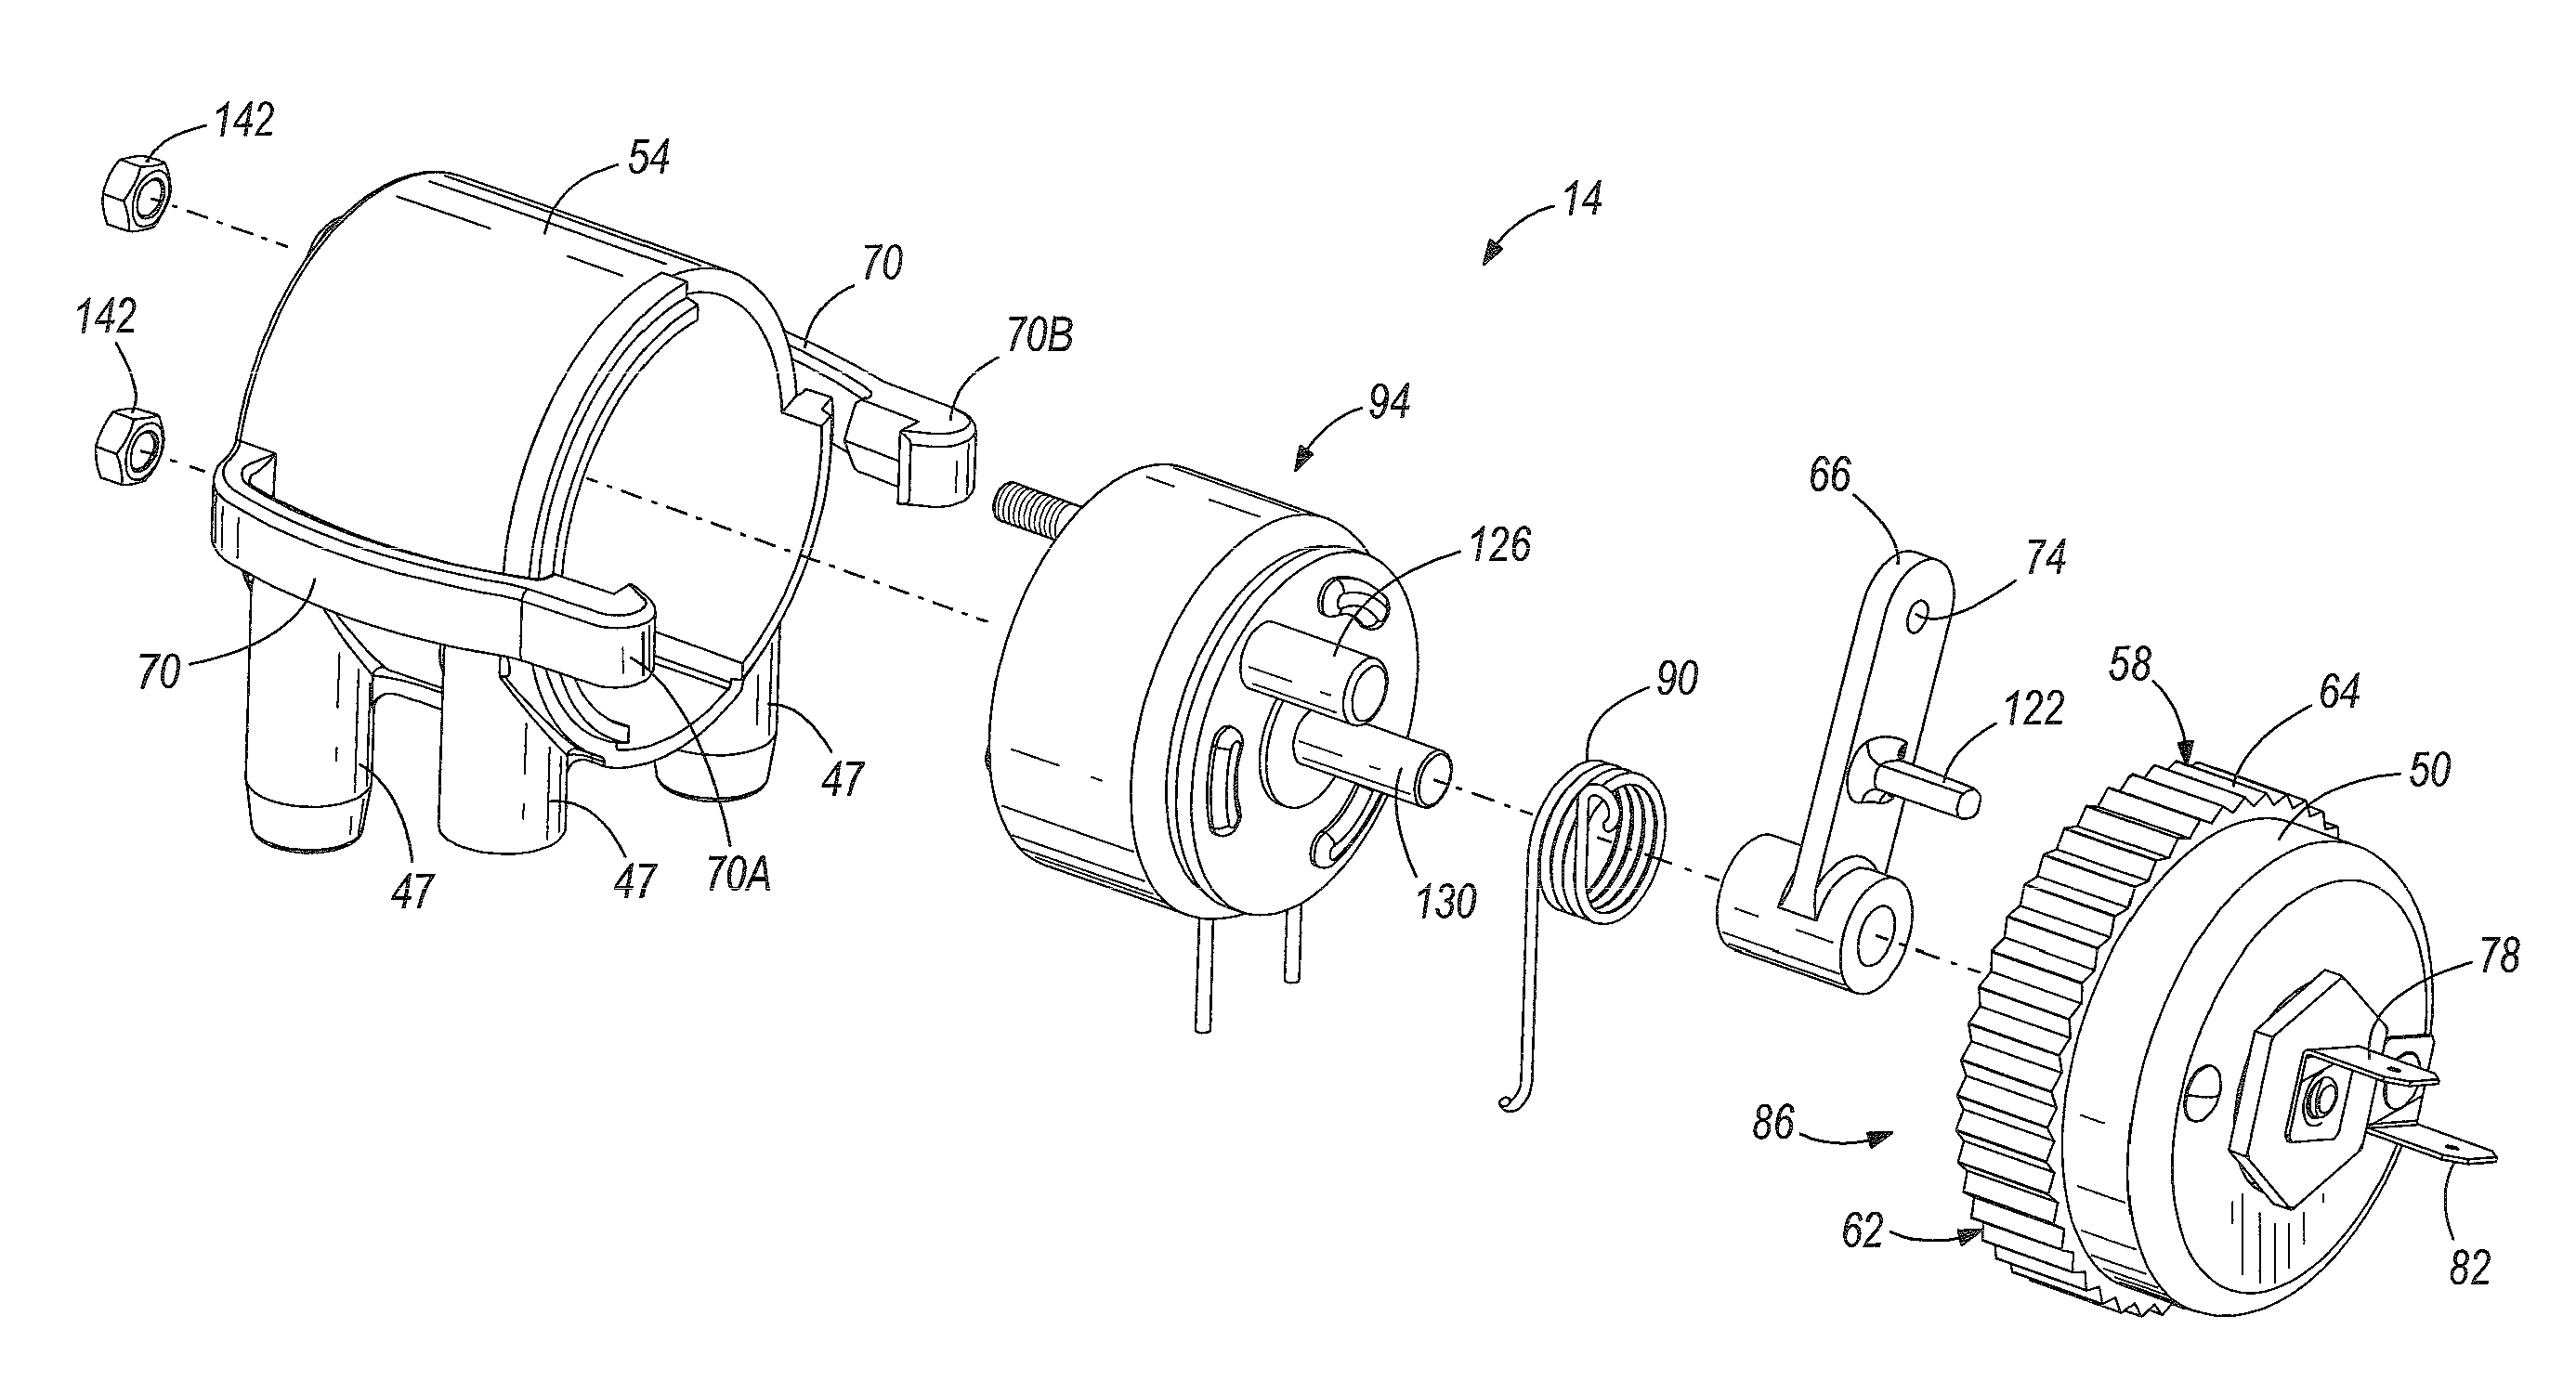 patent us8146558 - automatic choke for an engine